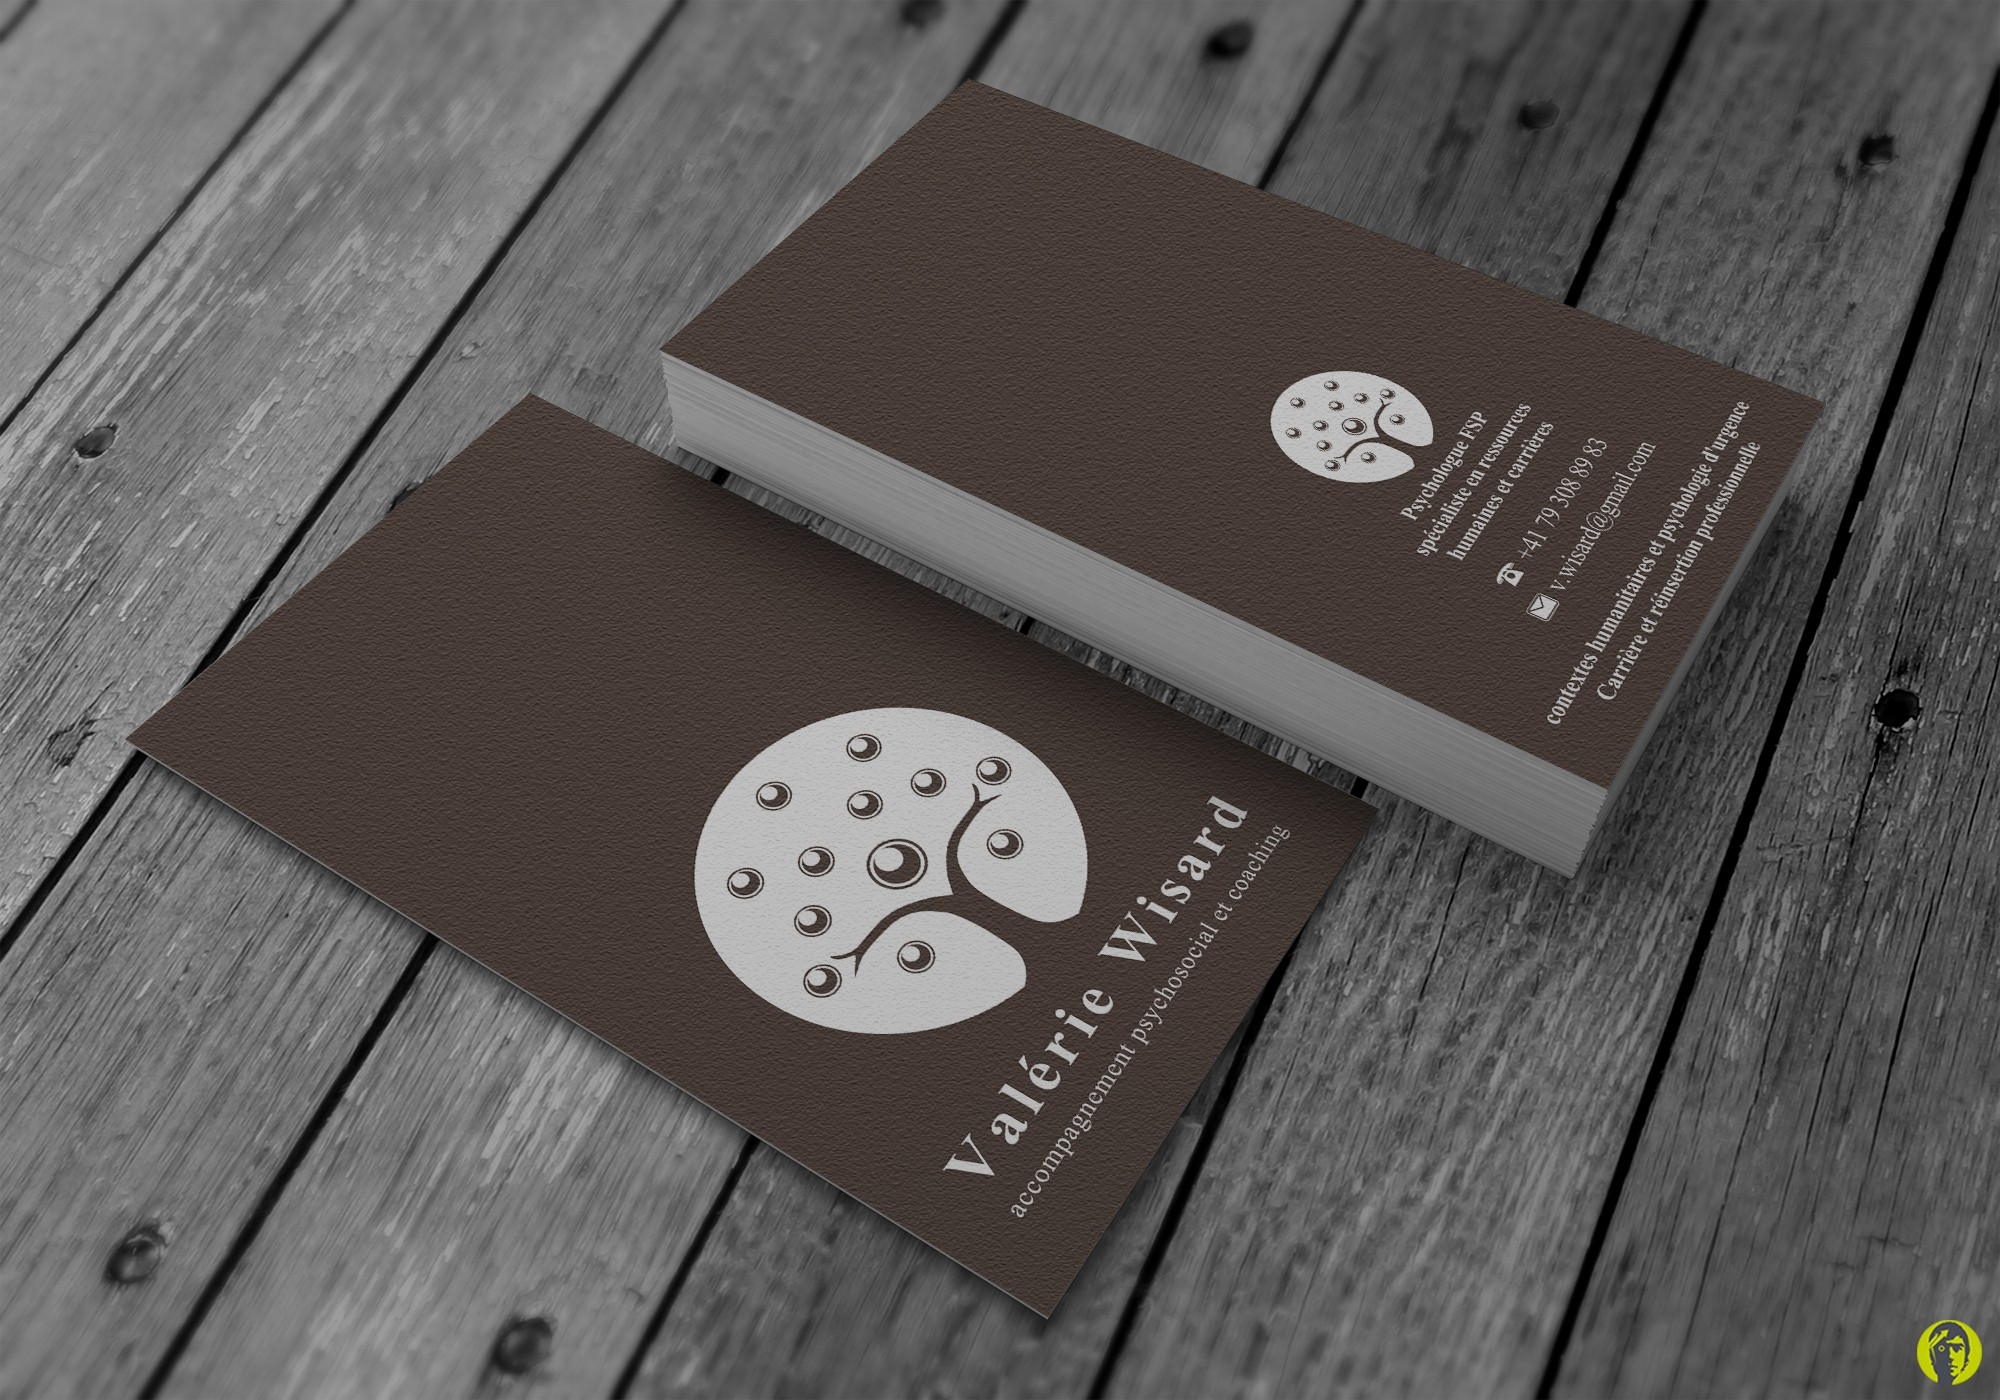 Help a psychologist with a new design business card